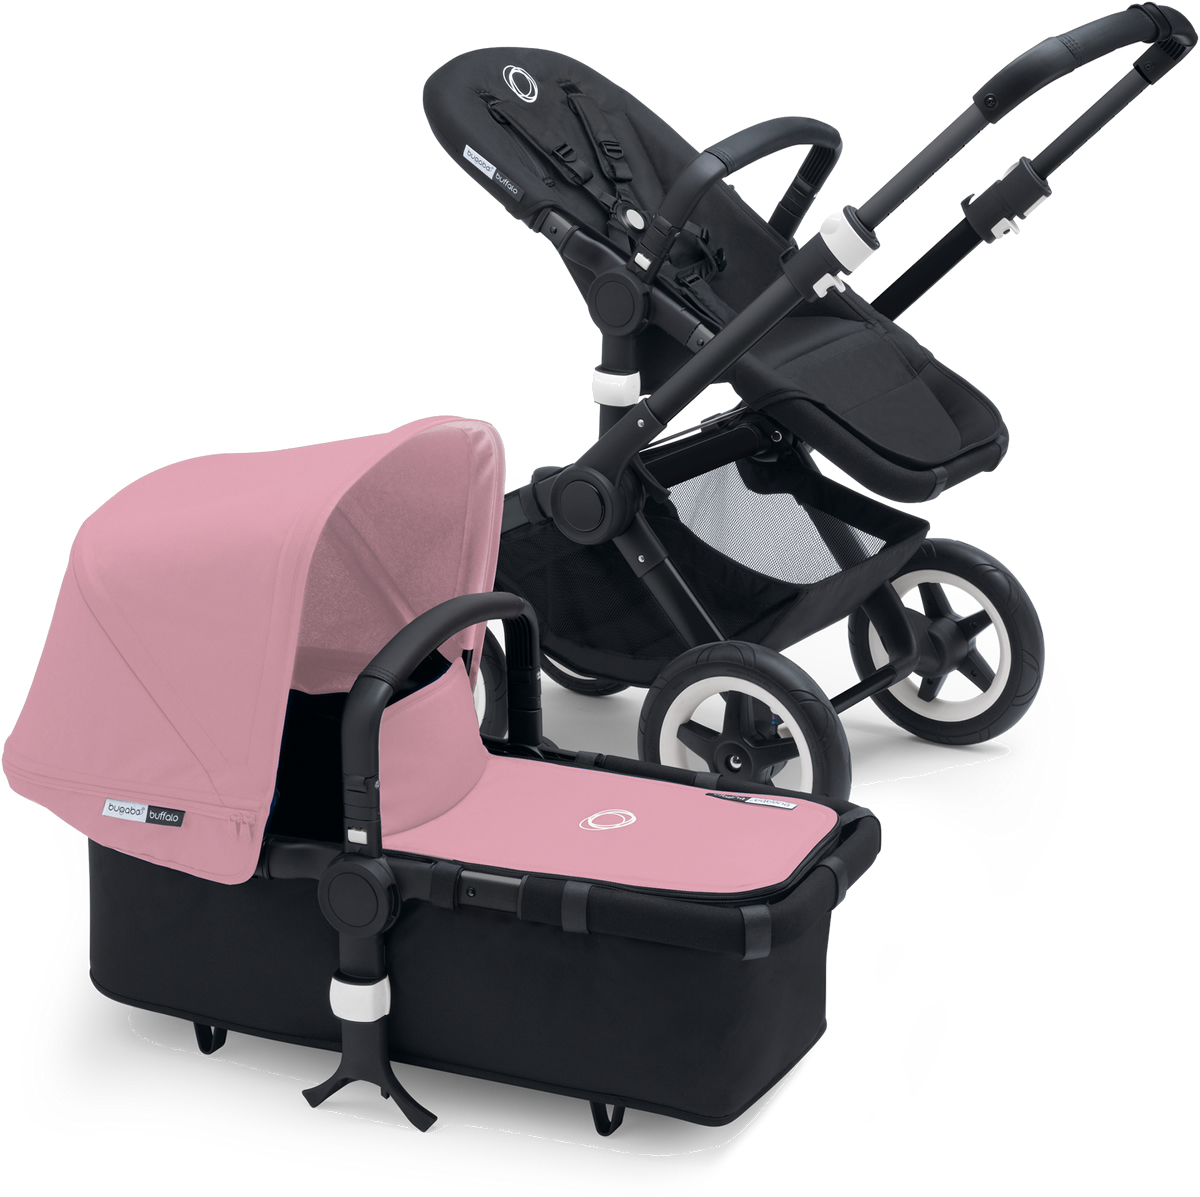 Bugaboo Buffalo Stroller - All Black/Pink